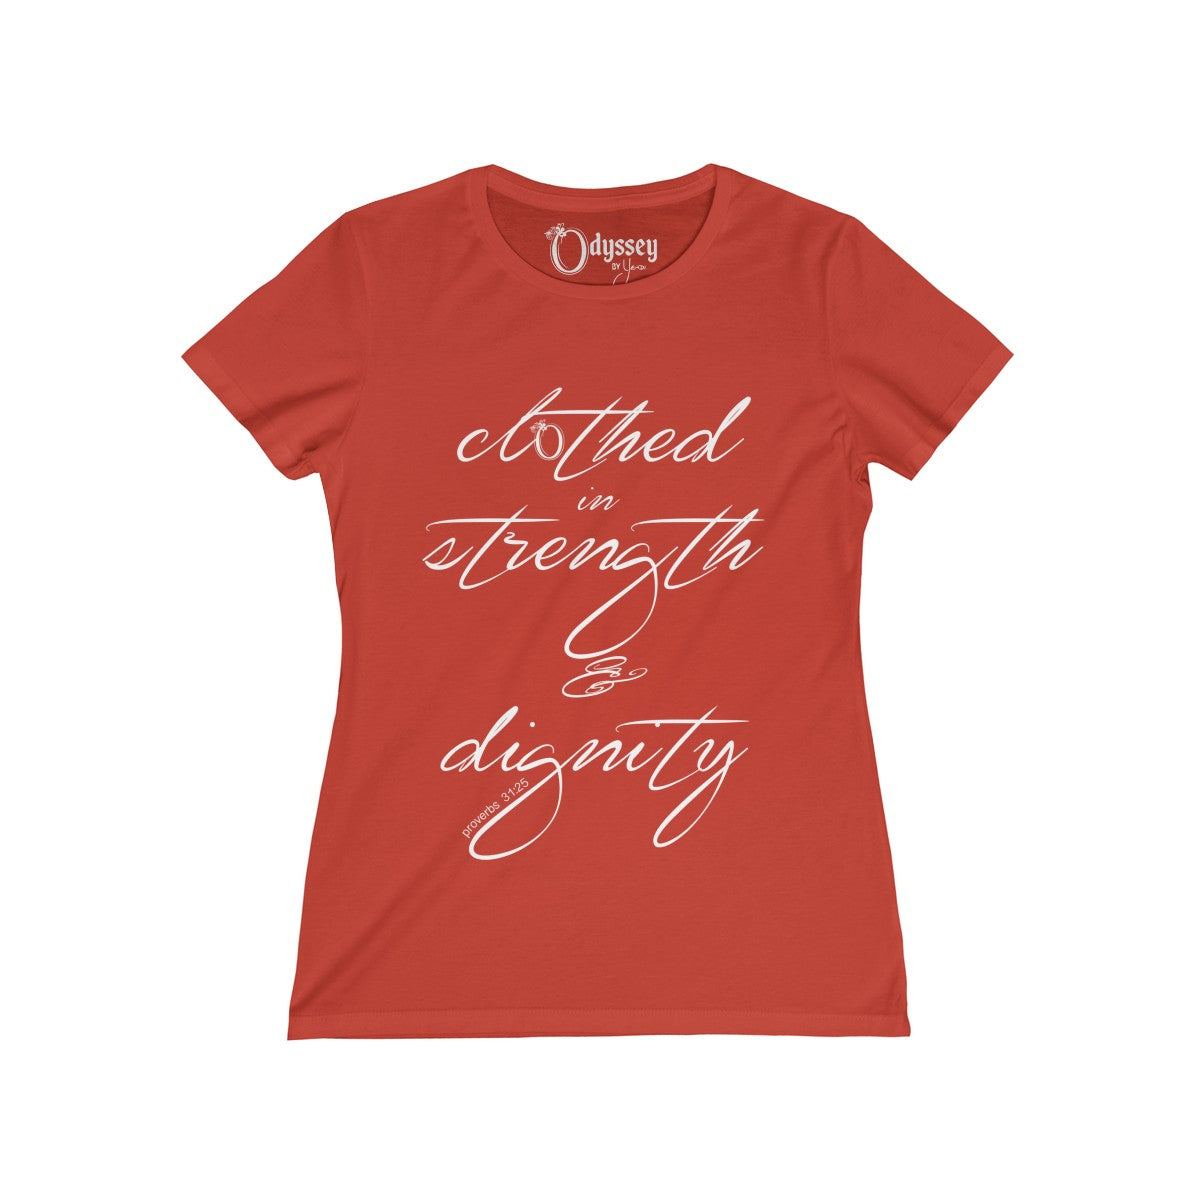 Odyssey Clothed in Strength and Dignity Women's  Tee - Dark